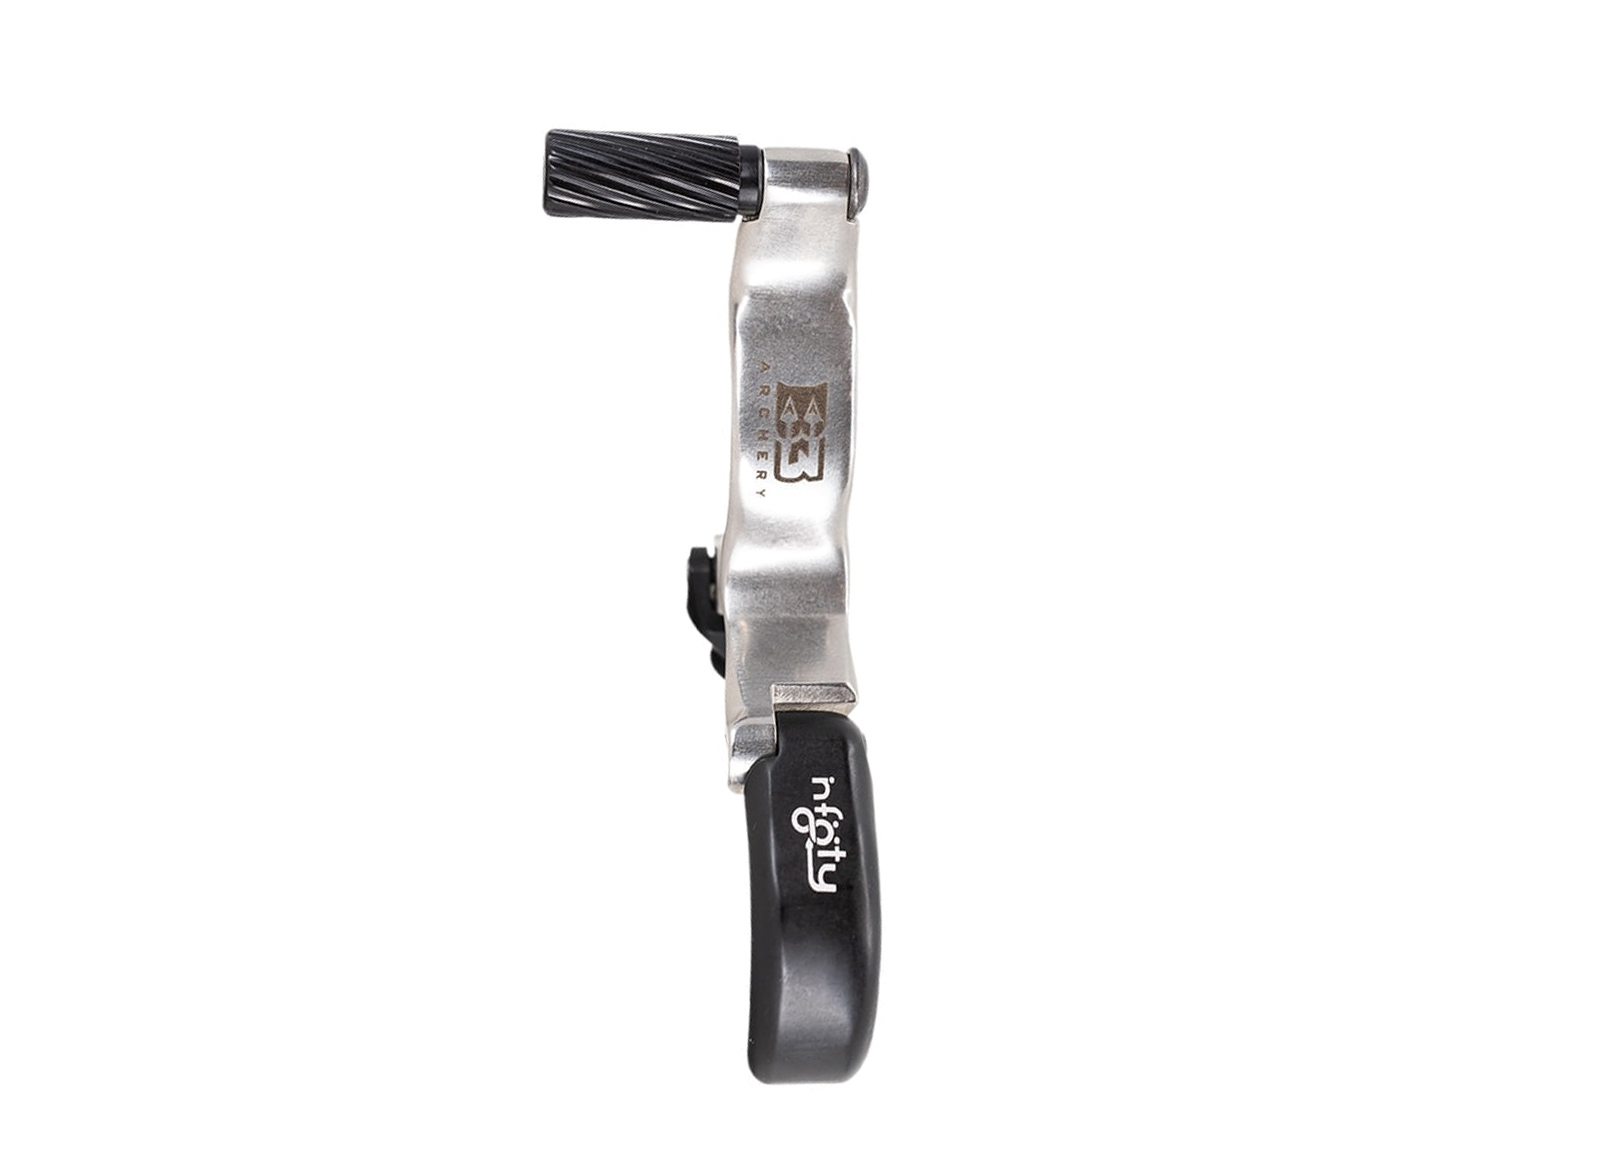 B3 ARCHERY SGANCIO BACK TENSION INFINITY PRO STAINLESS STEEL